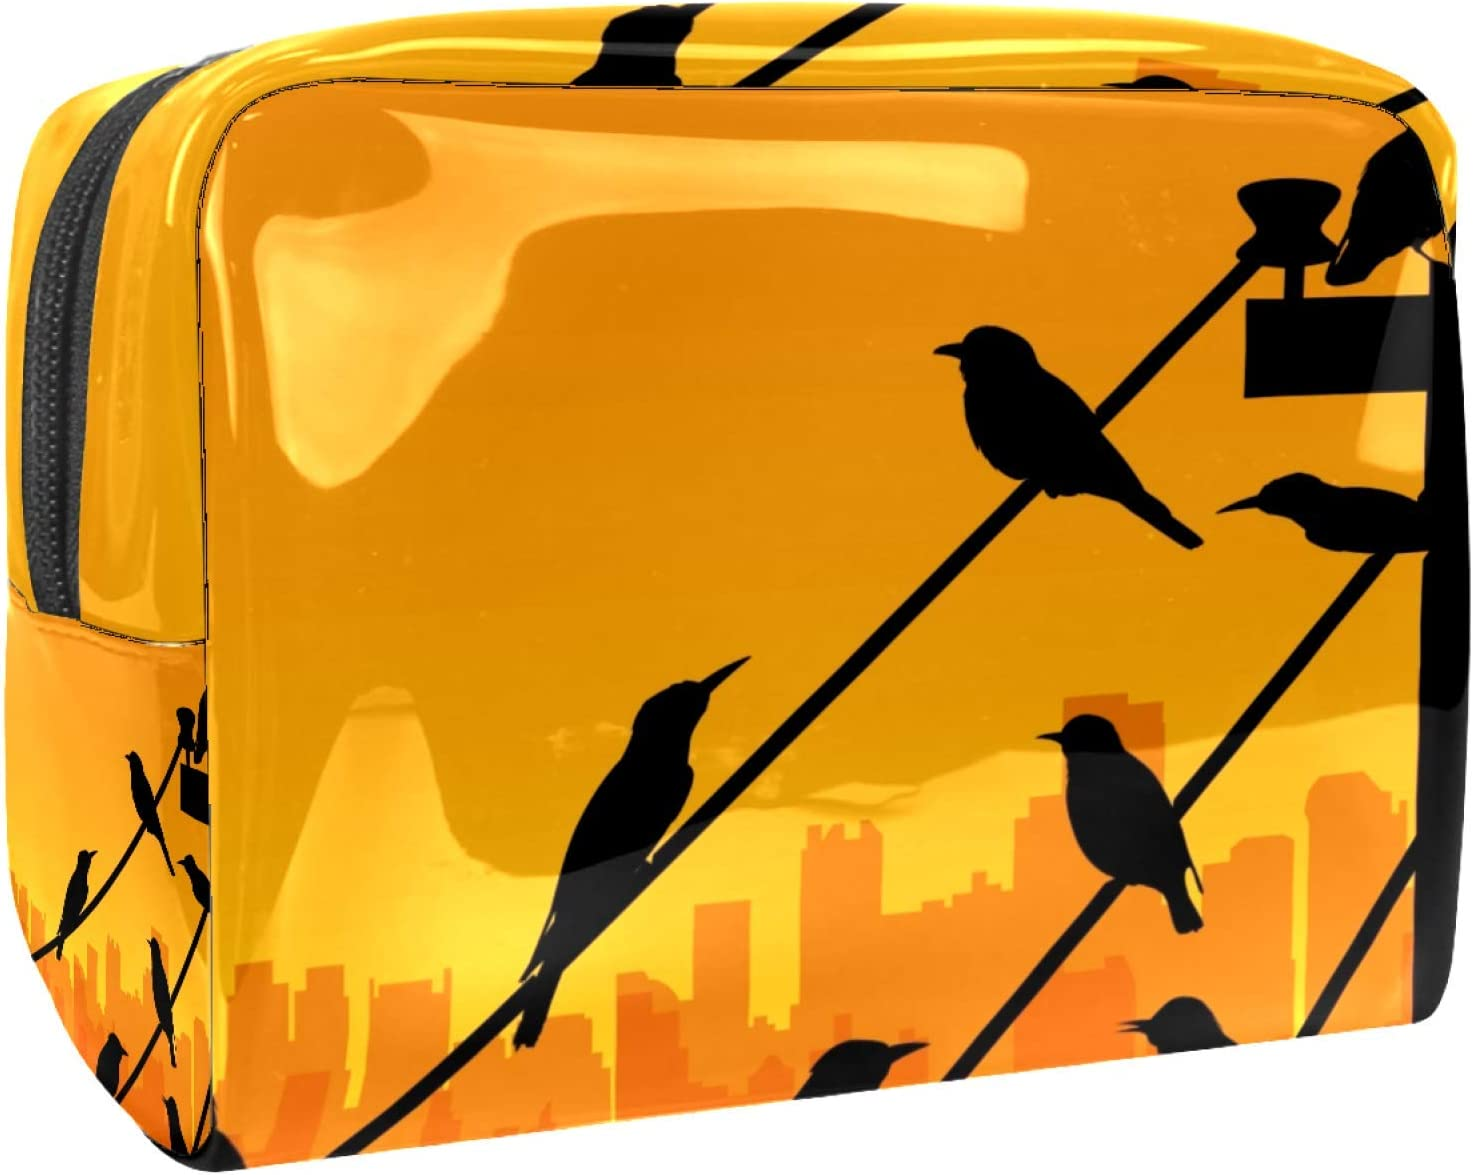 Cosmetic Bag for Women Max sold out 71% OFF Roomy Makeup Bags Sunset At Birds Backgro